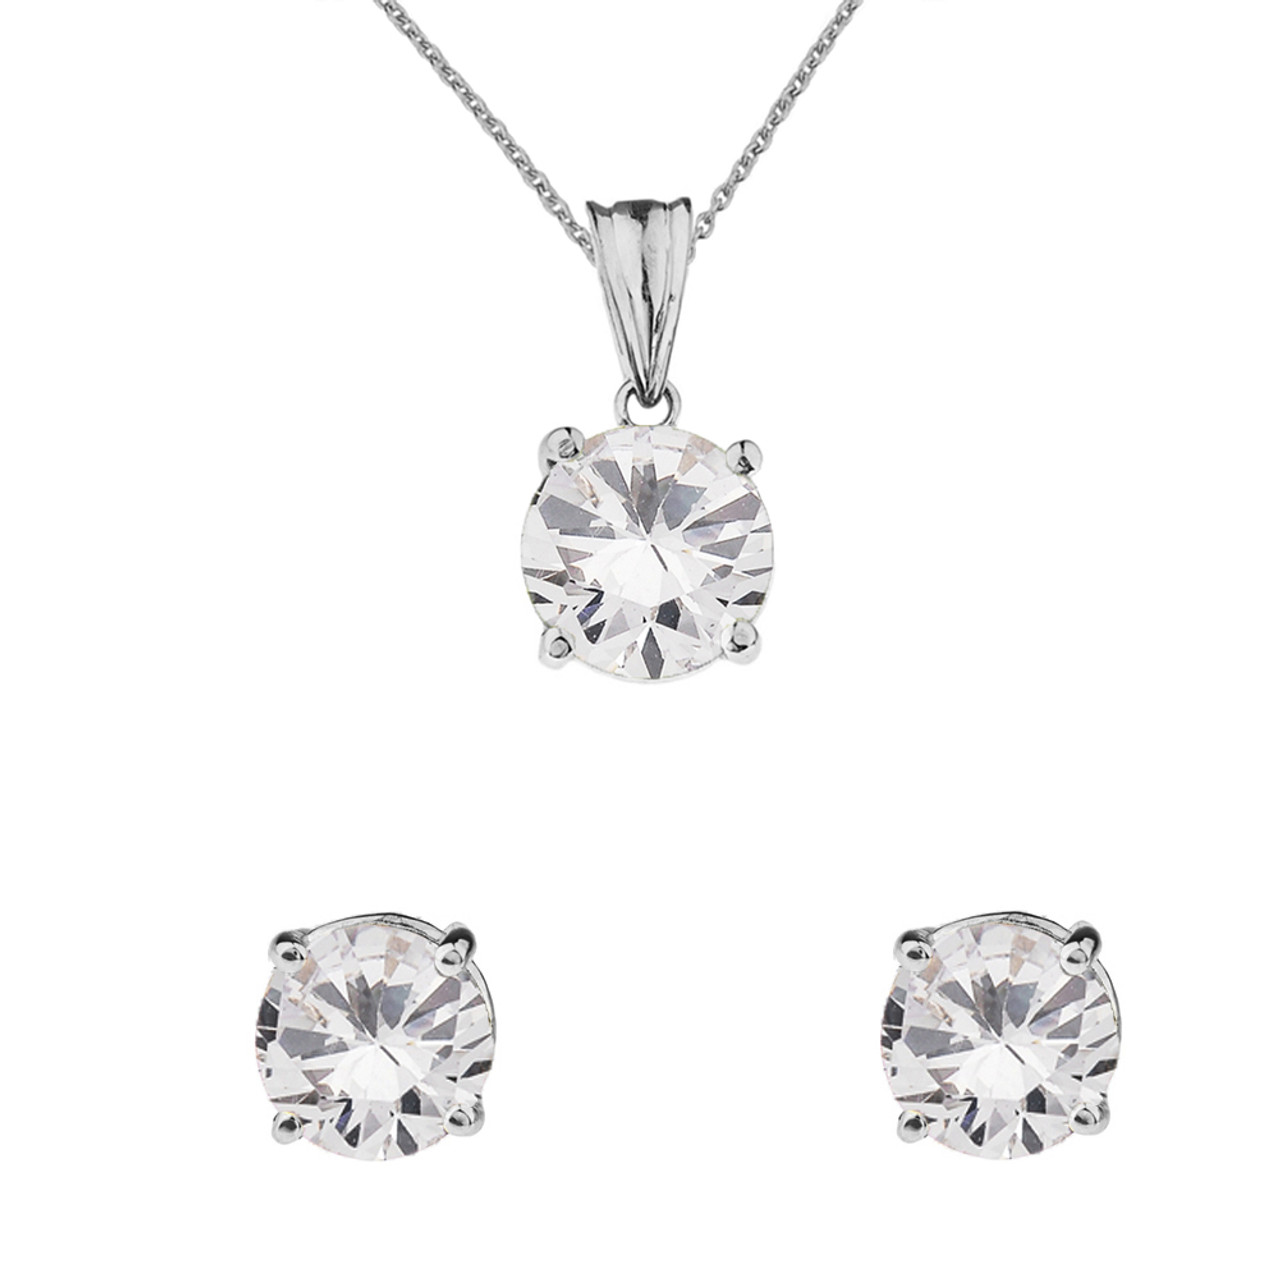 White gold dainty round april birthstone cz pendant necklace set 10k white gold april birthstone cubic zirconia pendant necklace earring set aloadofball Image collections